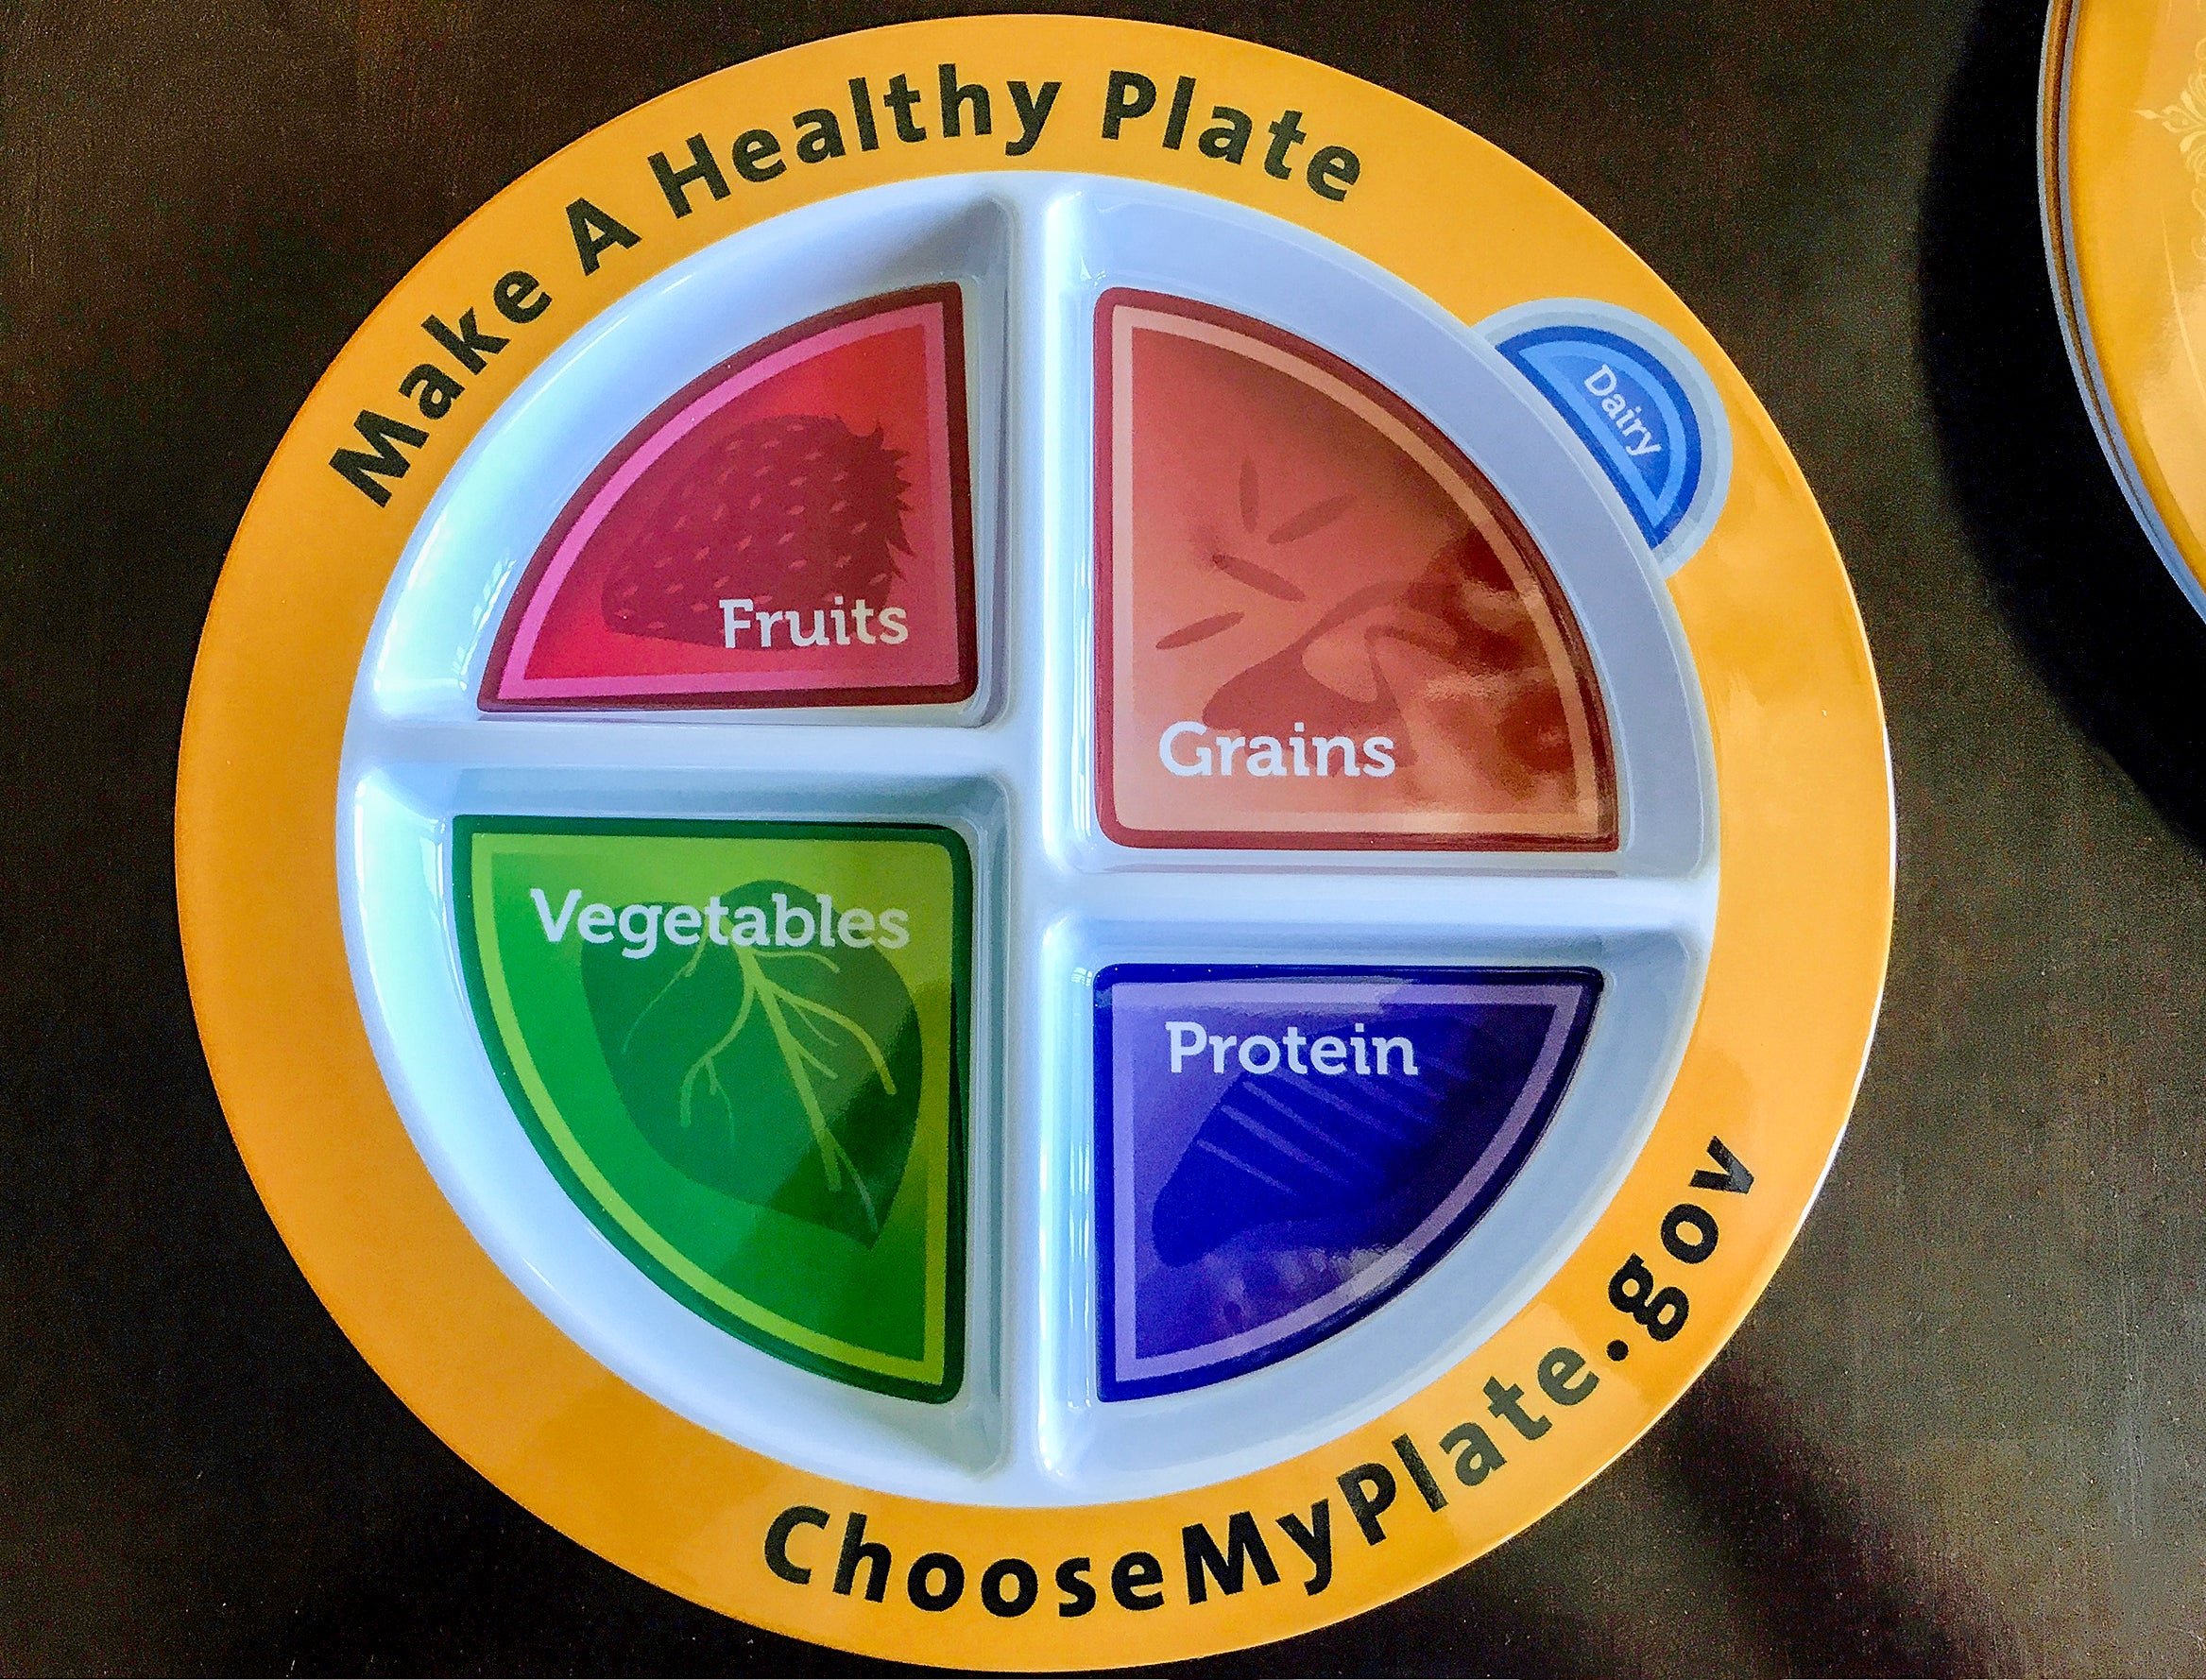 25 pack MyPlate Plate Plastic With Compartments - Nutrition Education Store Exclusive Design - 25 Plates With Free Shipping - Order 2 Packs If You Want 50 - Nutrition Education Store